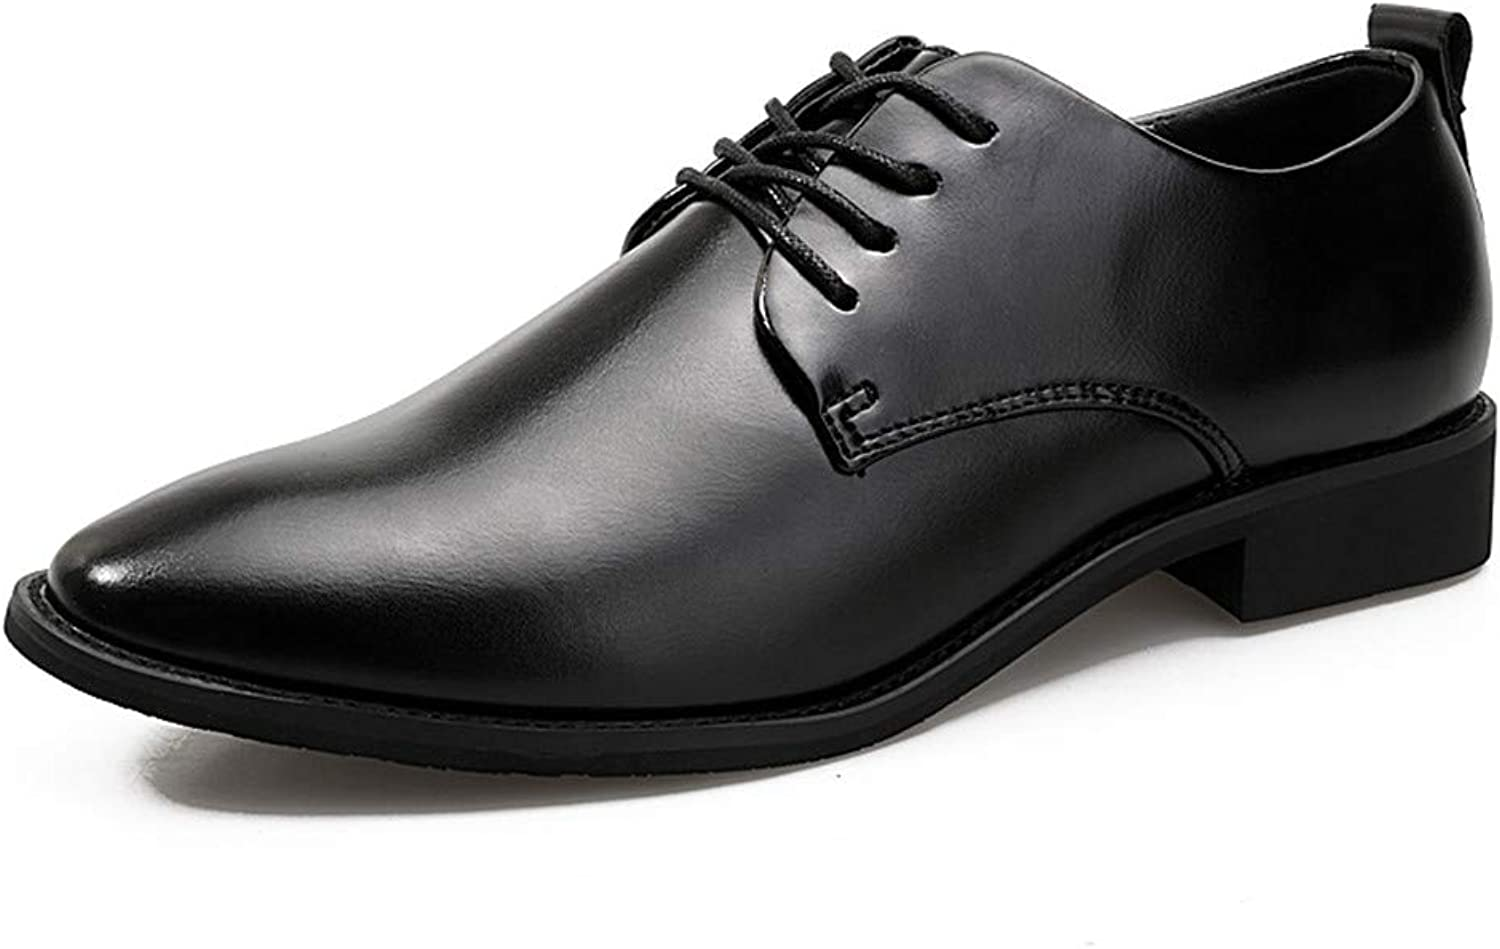 Z.L.F shoes Men's Business Oxford Casual Soft Leather Pointed Lace Classic Fashion shoes Leather shoes